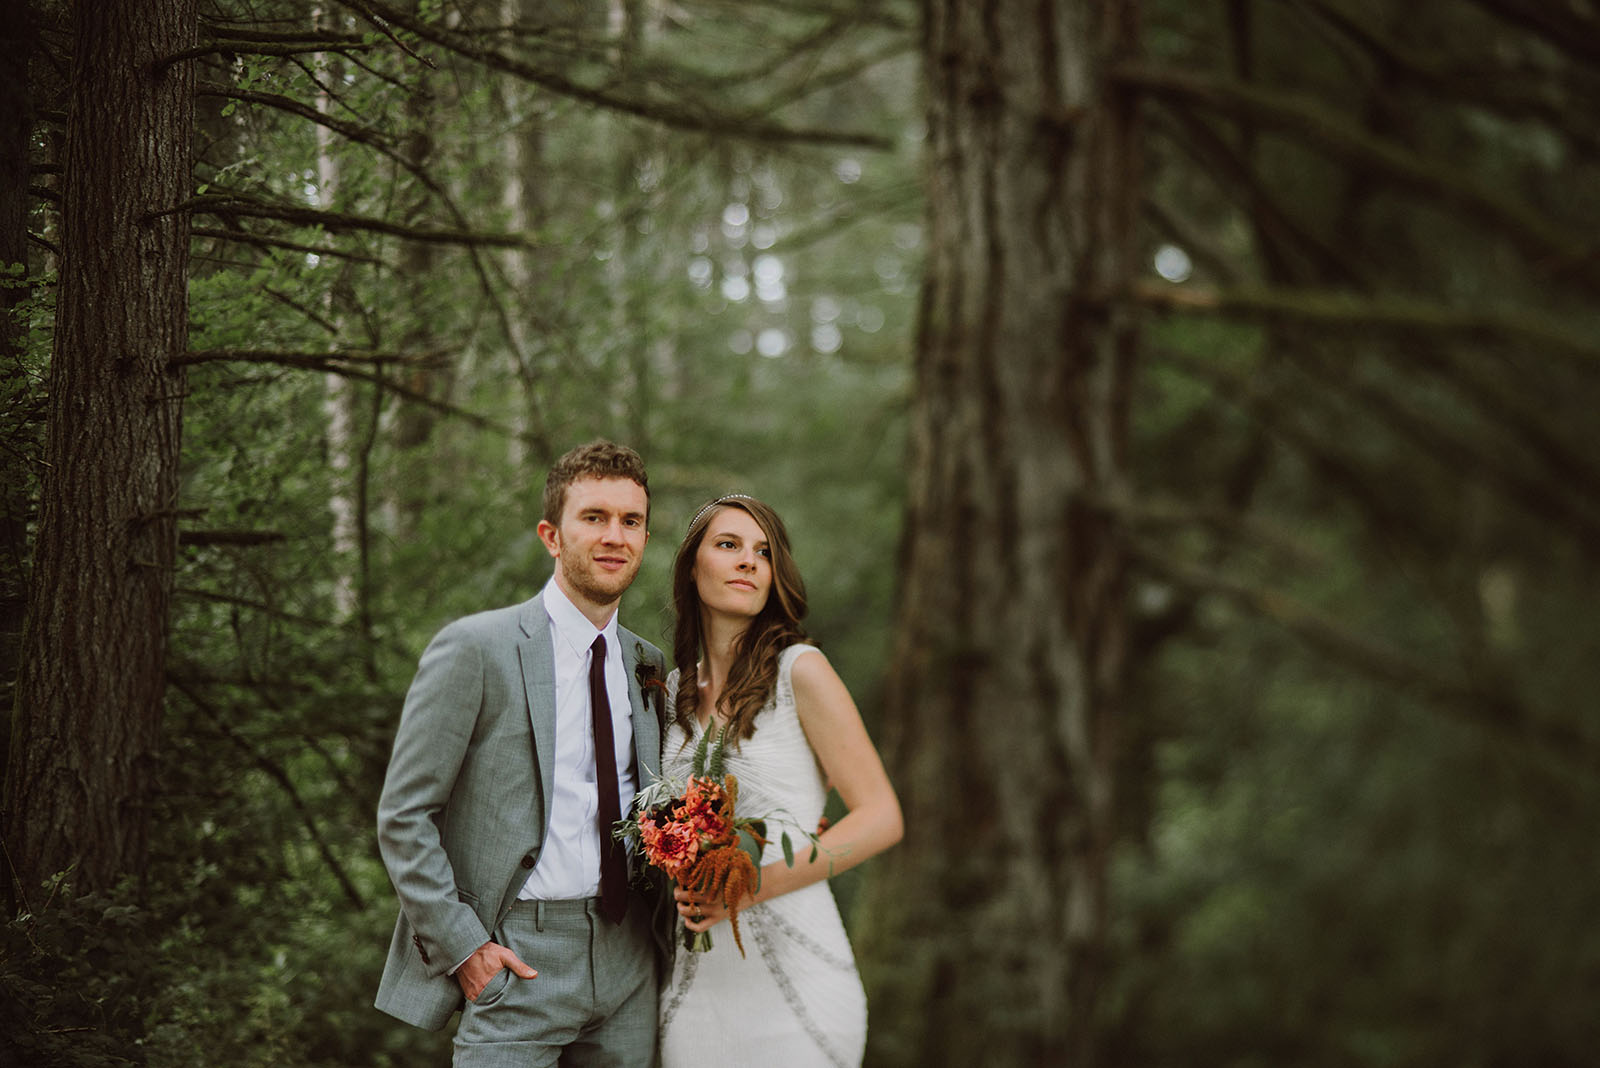 Bride and Groom portrait at Pendarvis Farm | Woodsy Campground Wedding